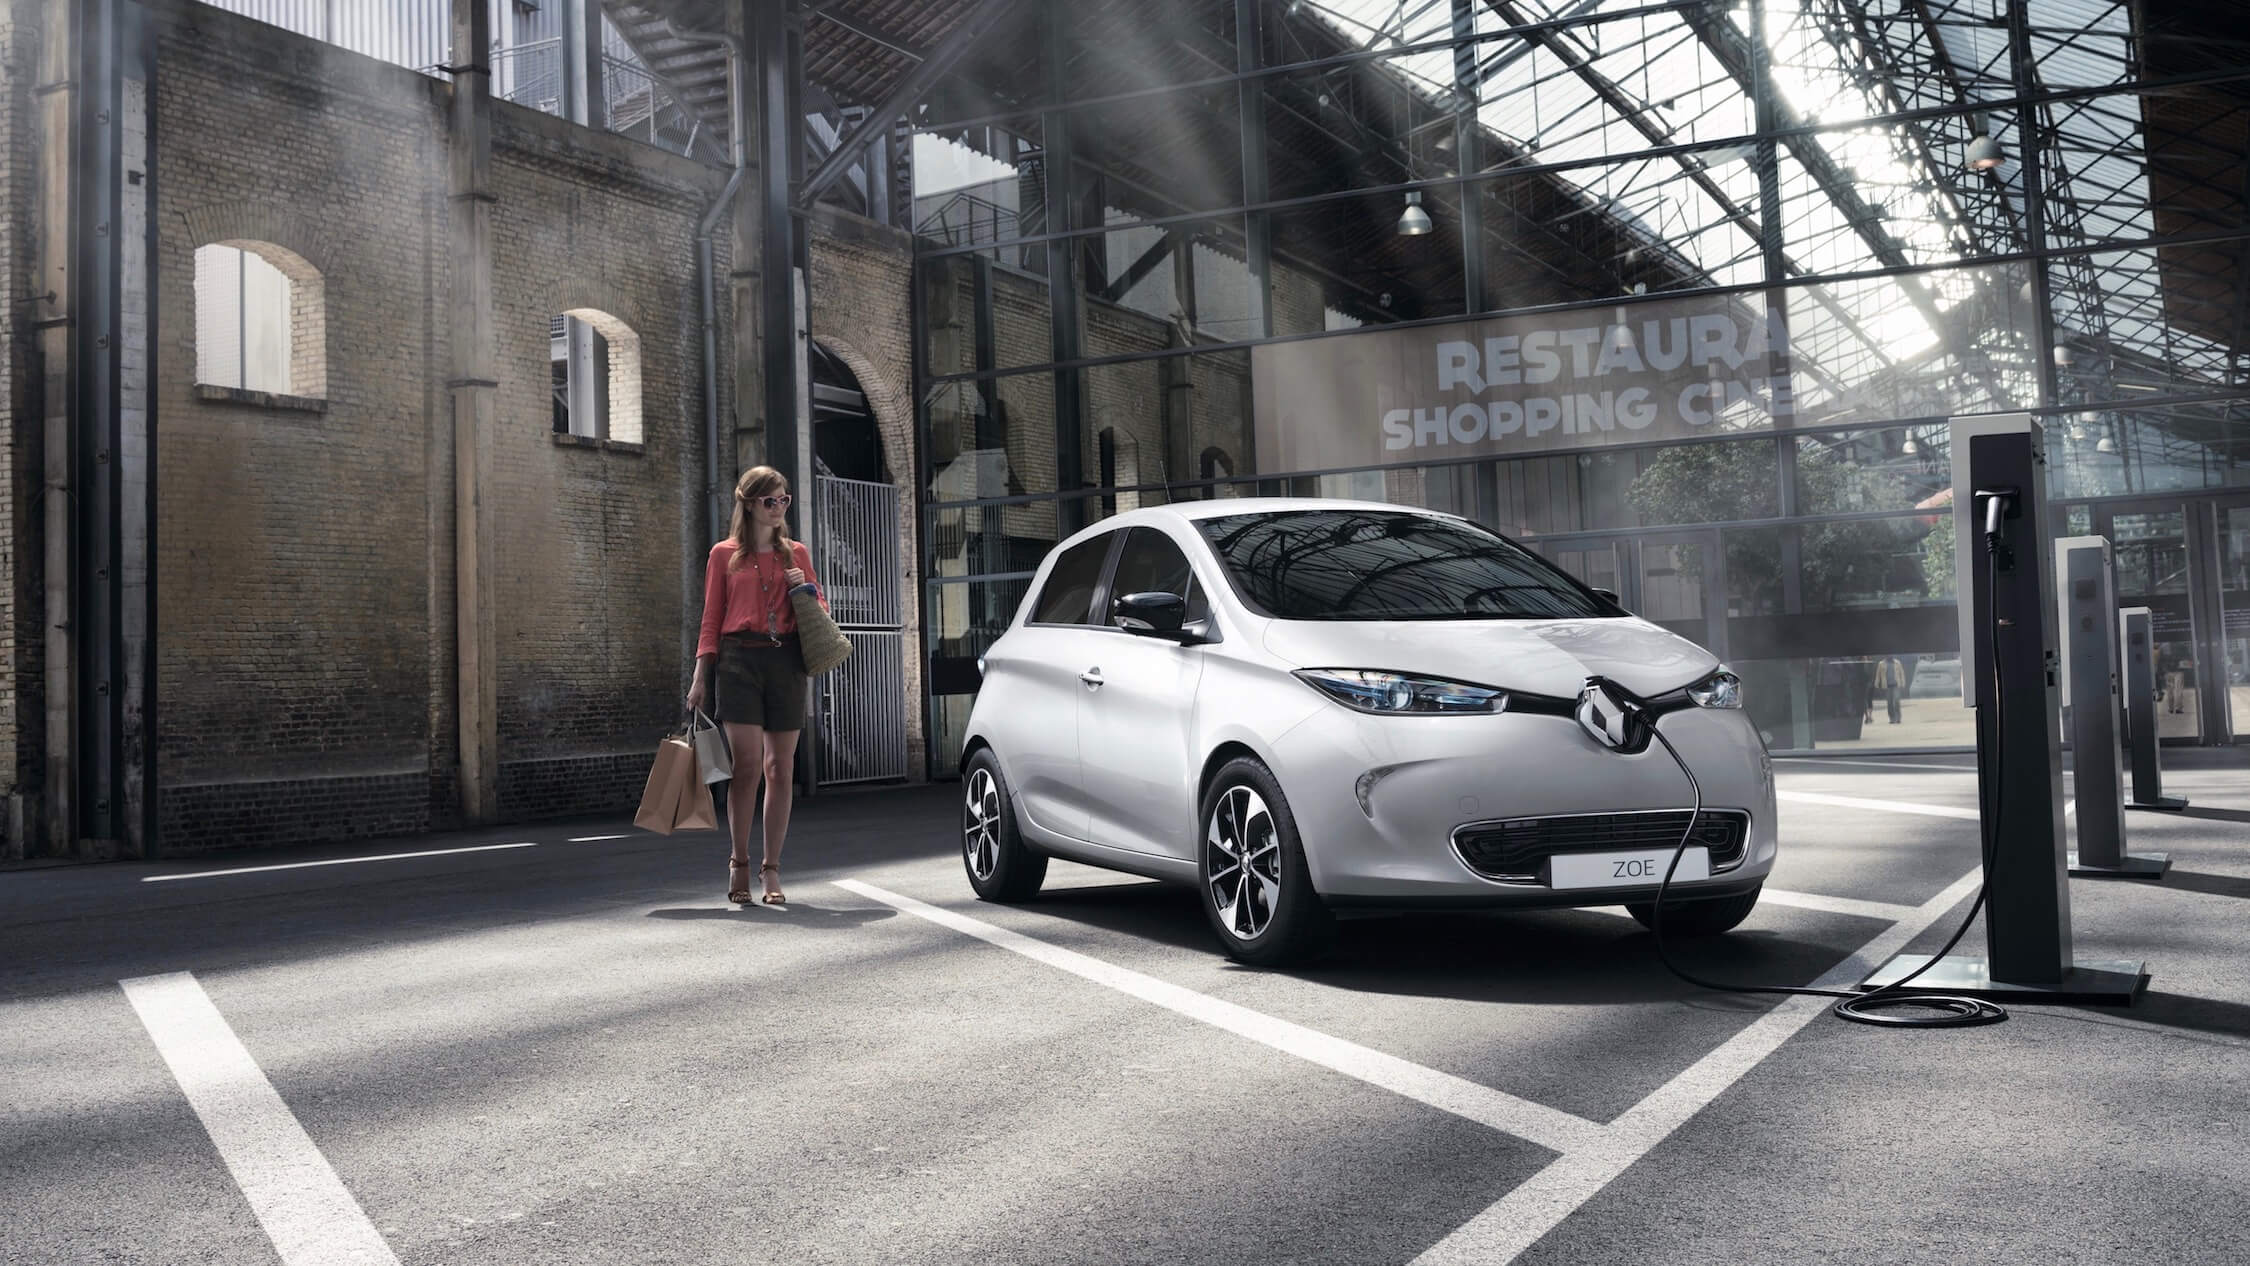 Renault Zoe charge point